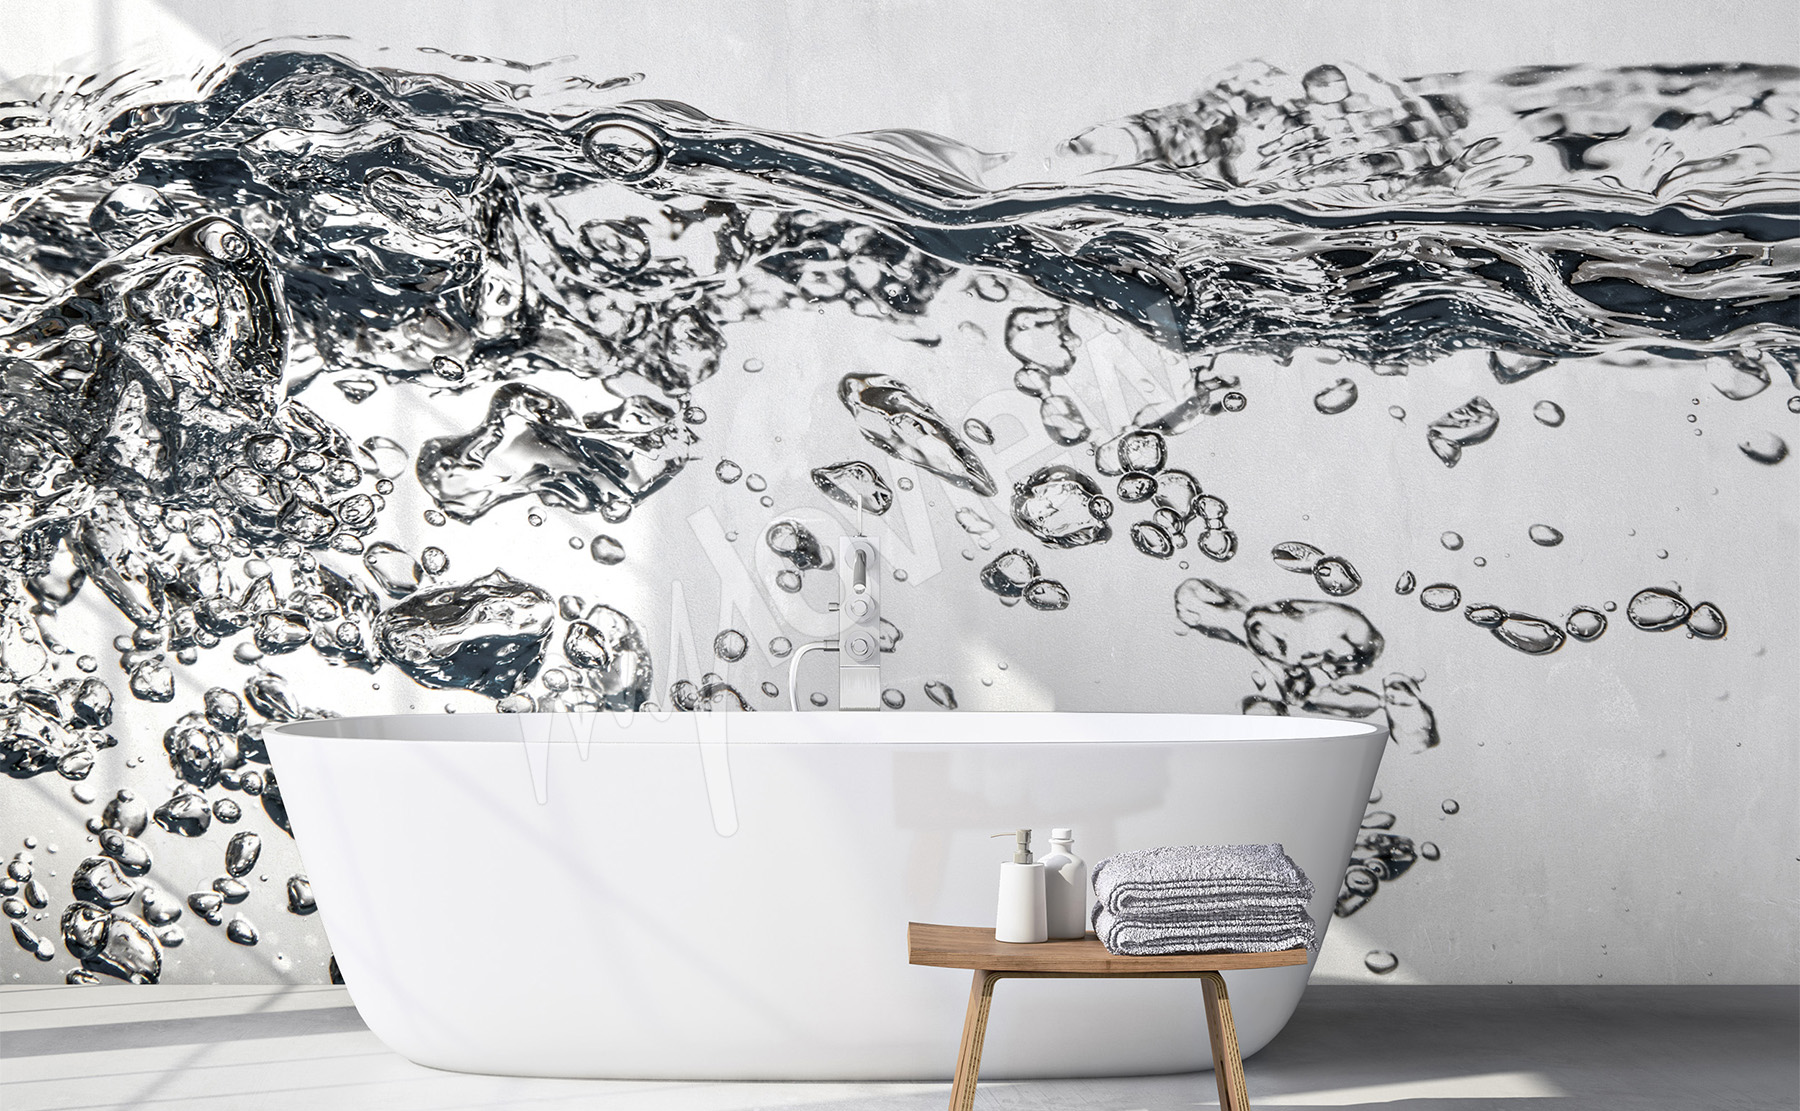 Wallpaper Murals For Bathrooms Murals Bathroom To Size Of Wall Myloview